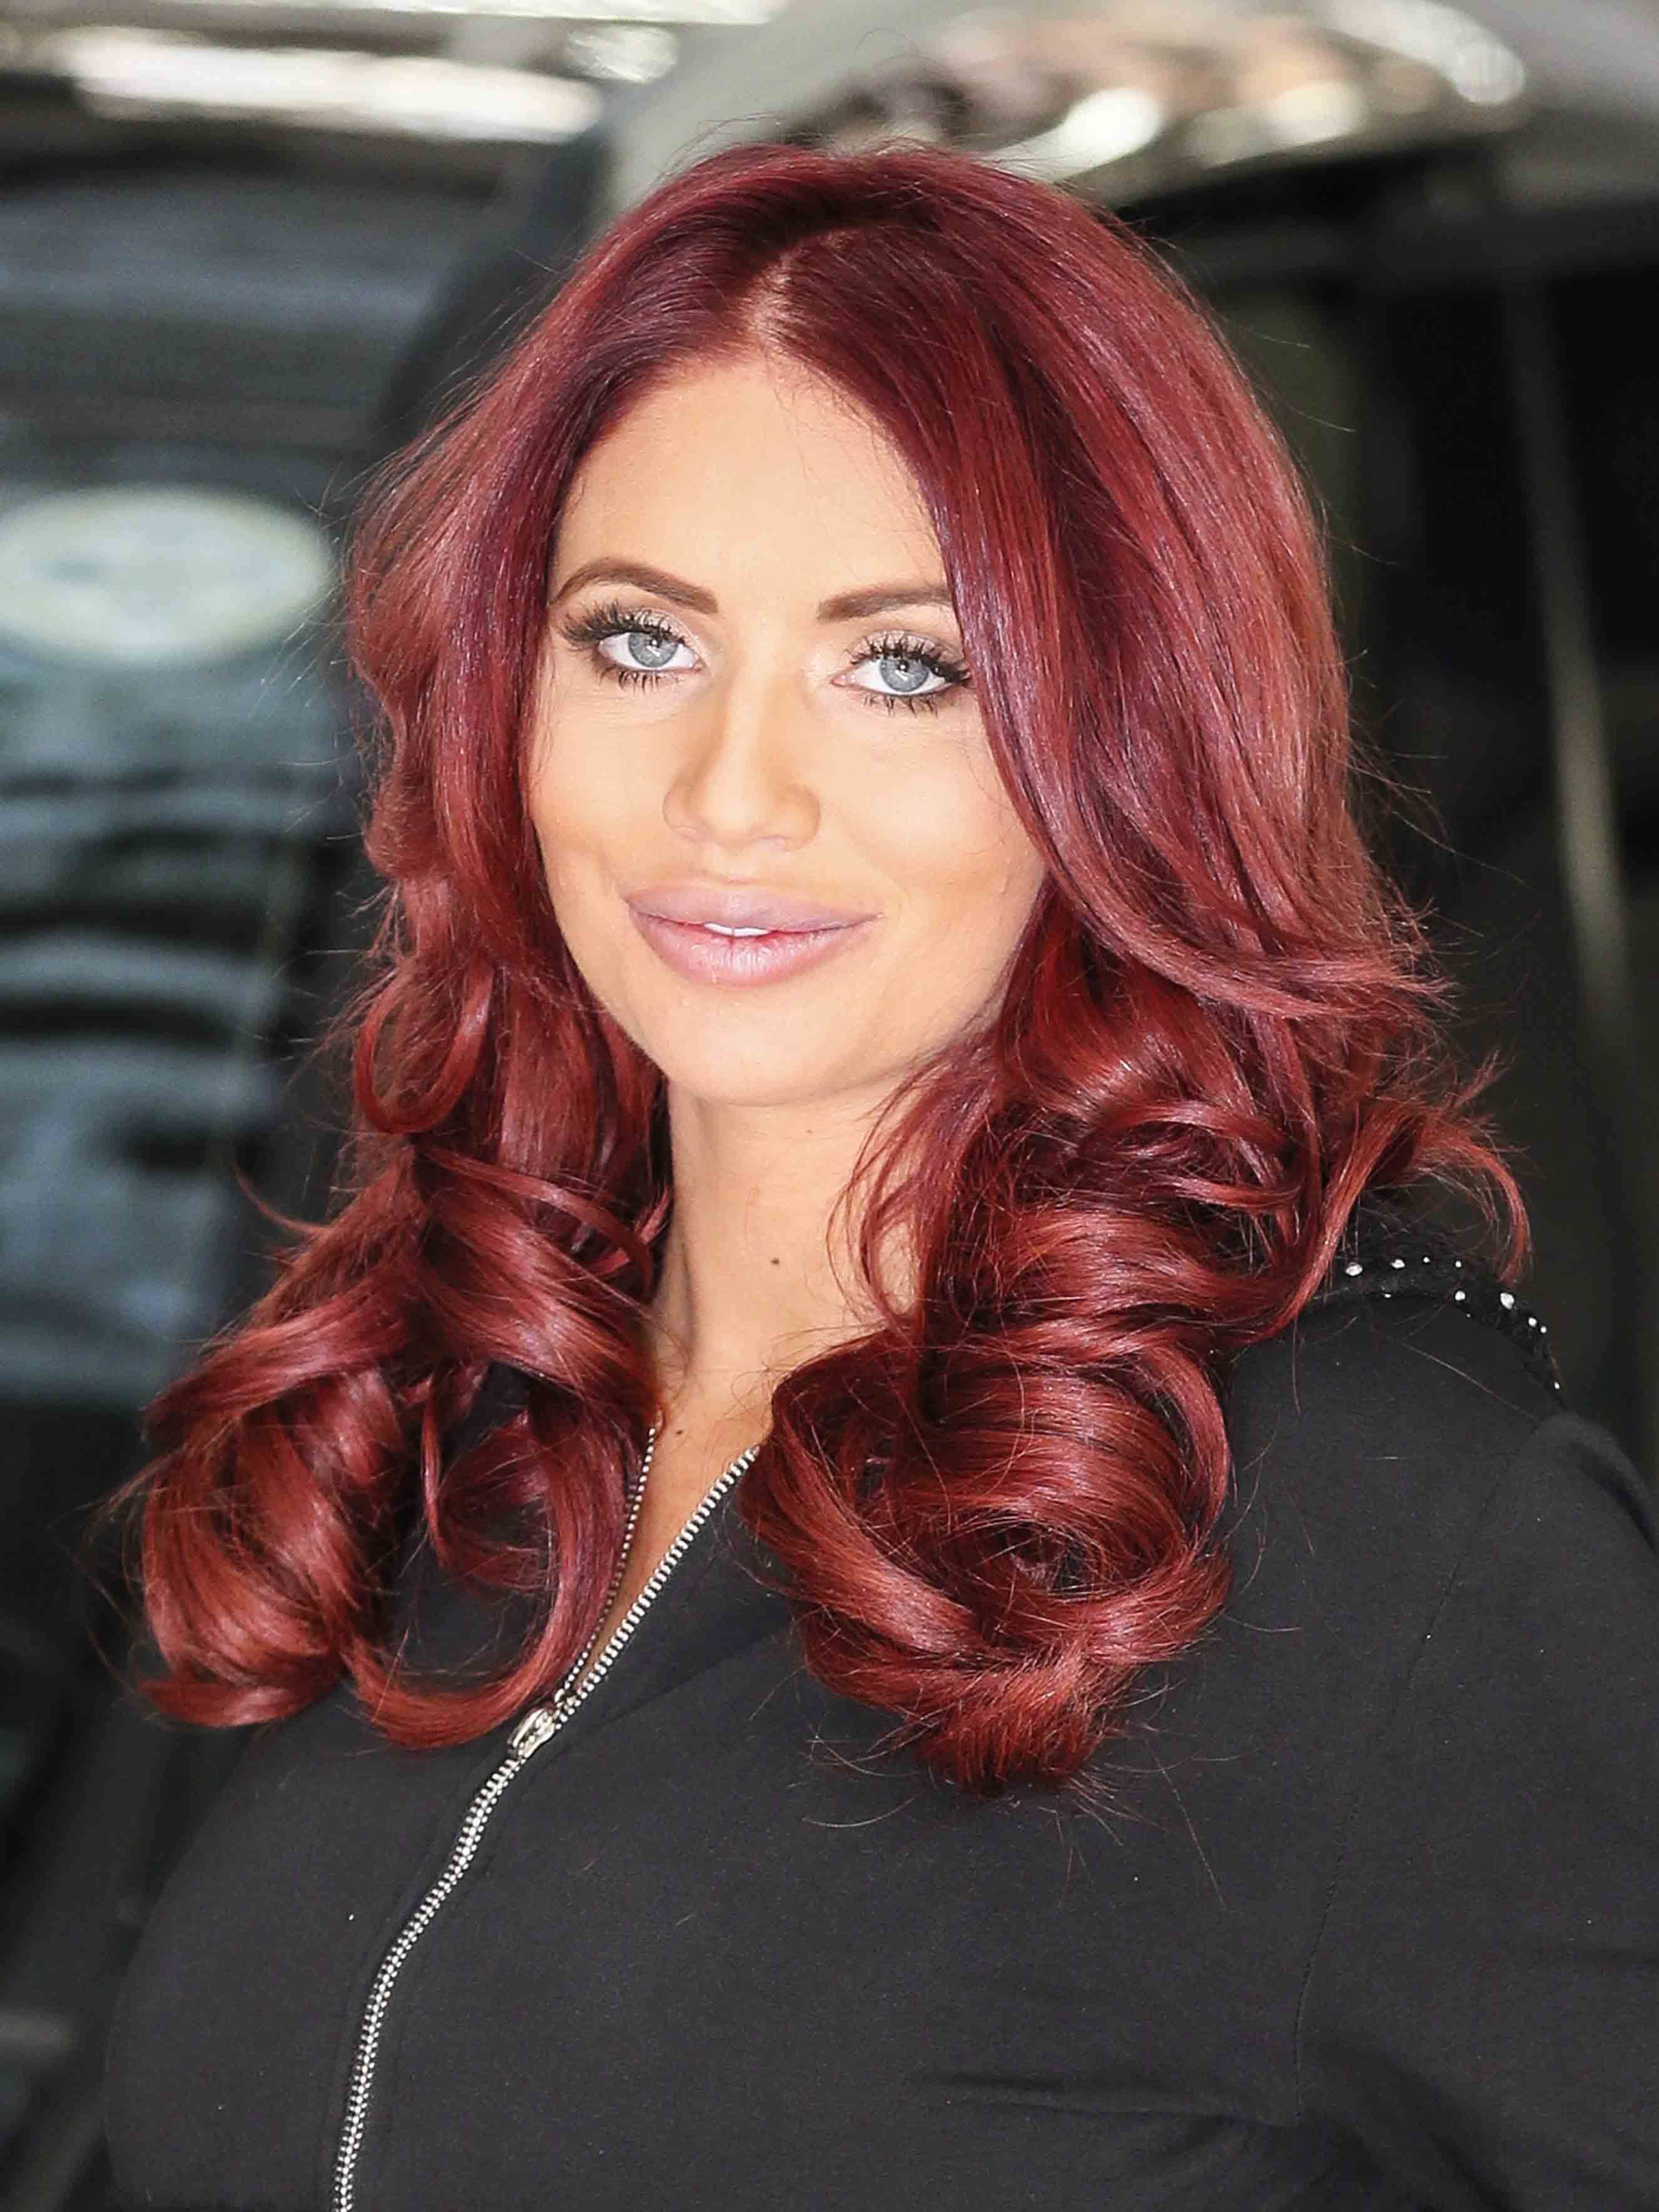 towie's amy childs finally reveals the name of her baby girl - and